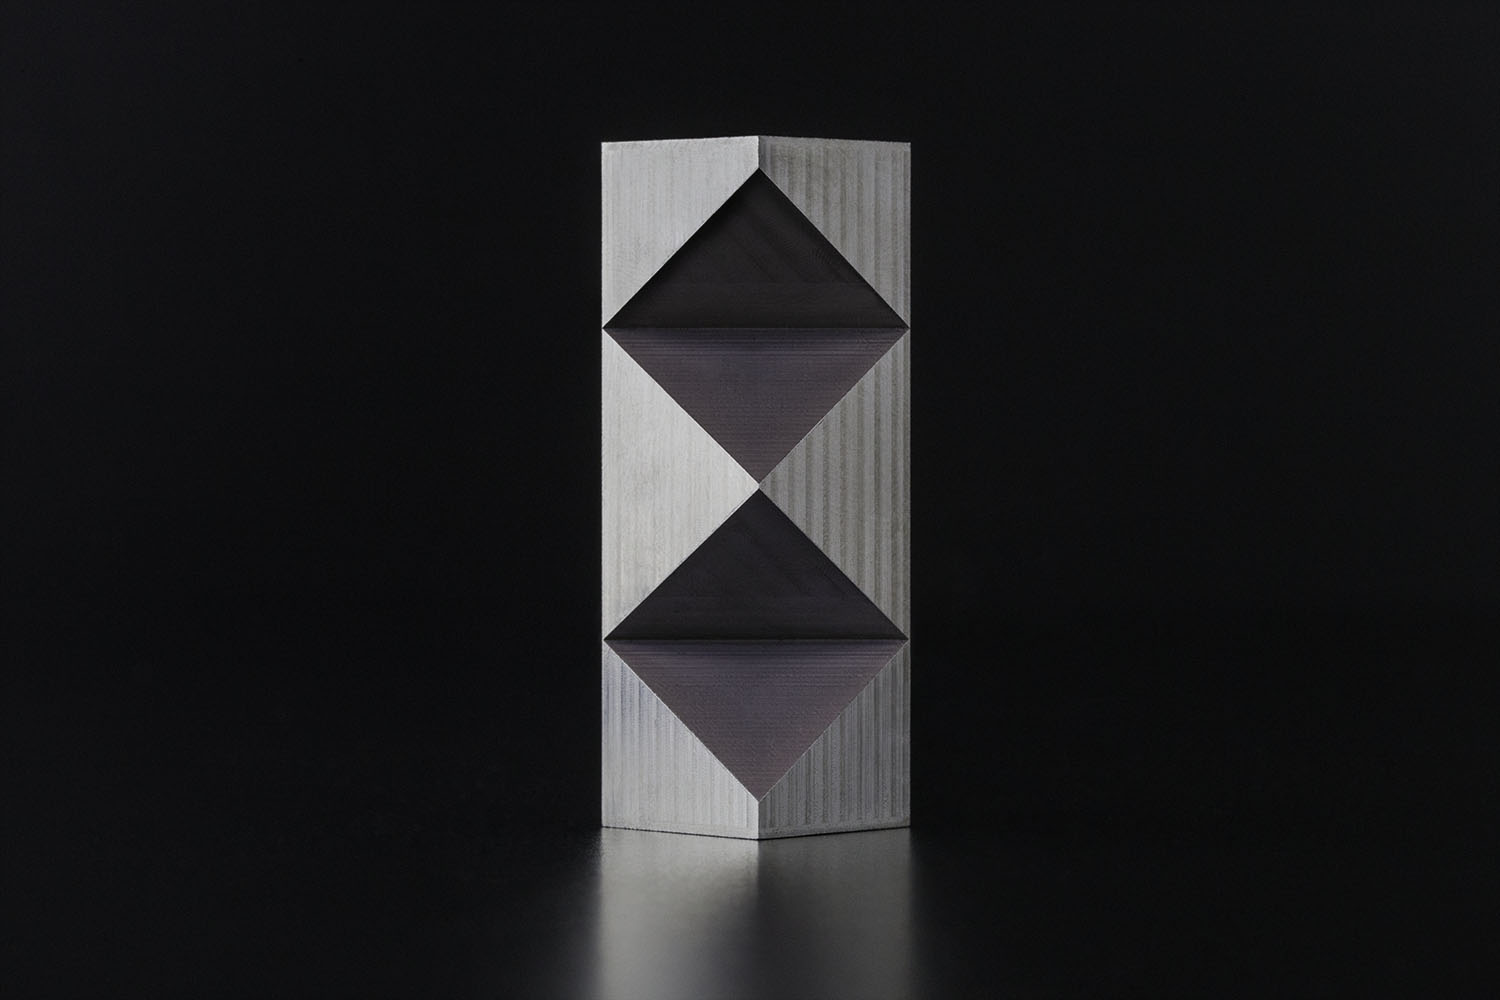 stainless steel cnc material